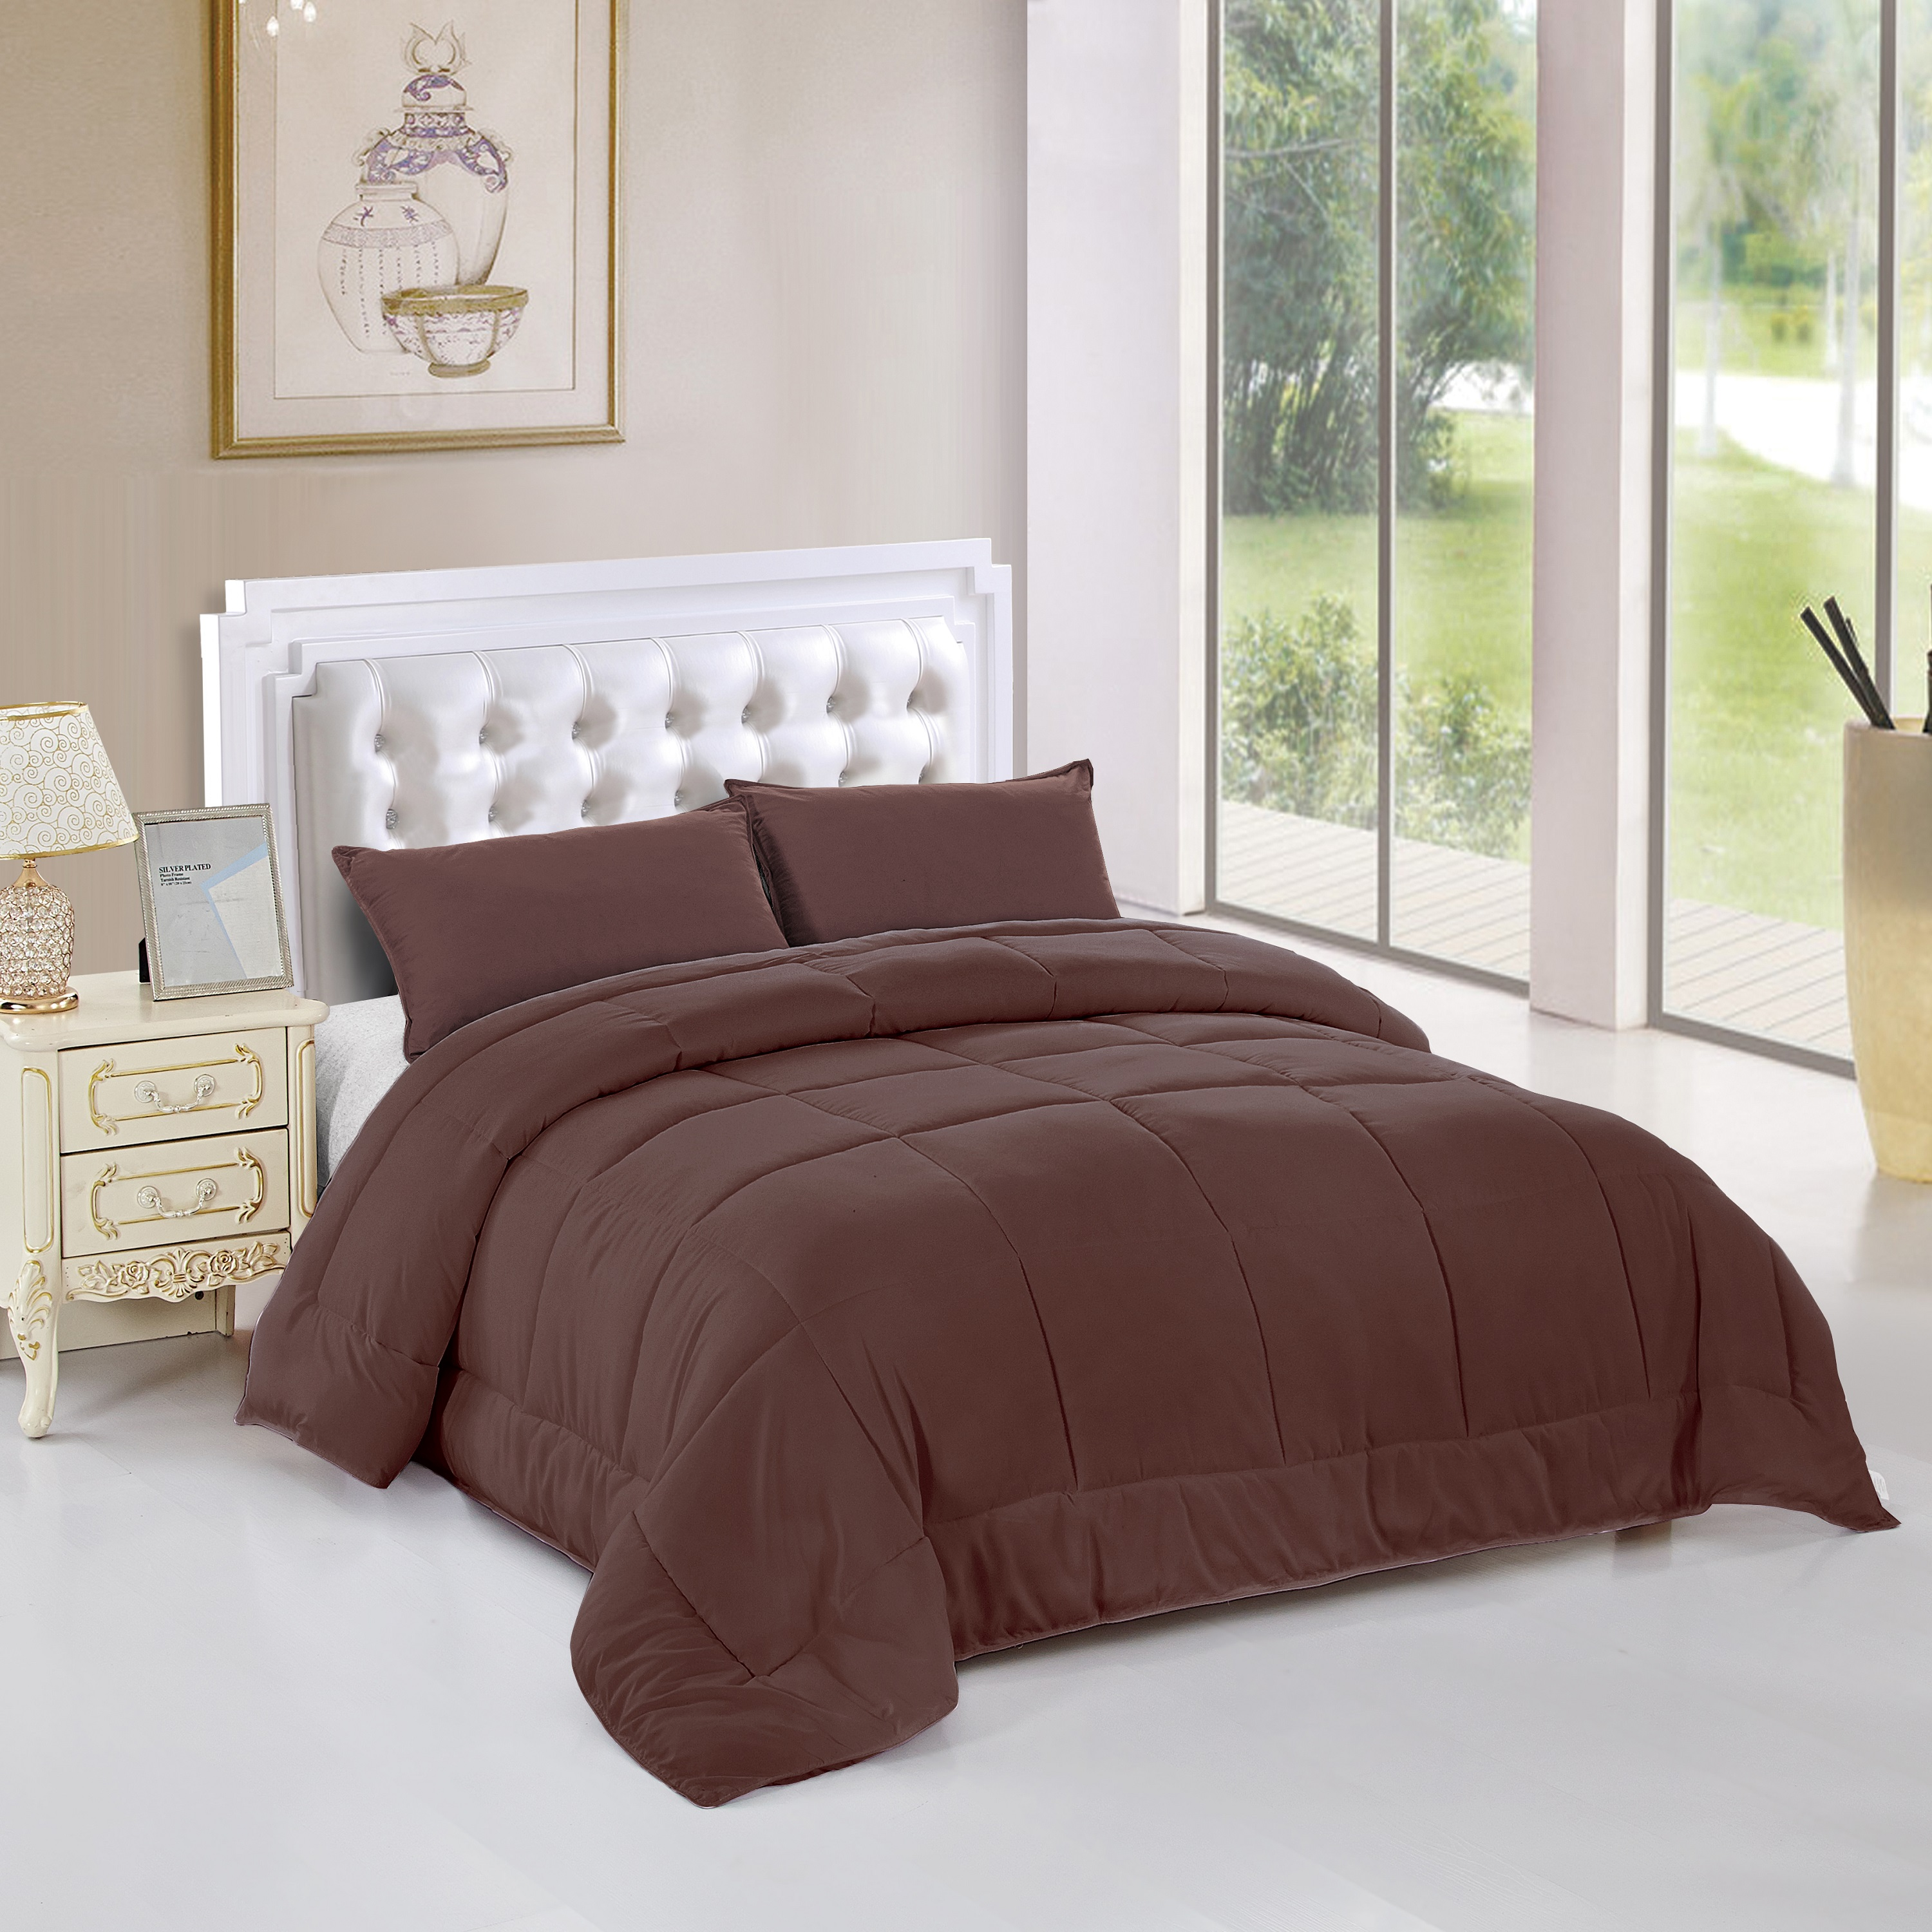 Verno Deluxe Down Alternative 3-Piece Comforter Set